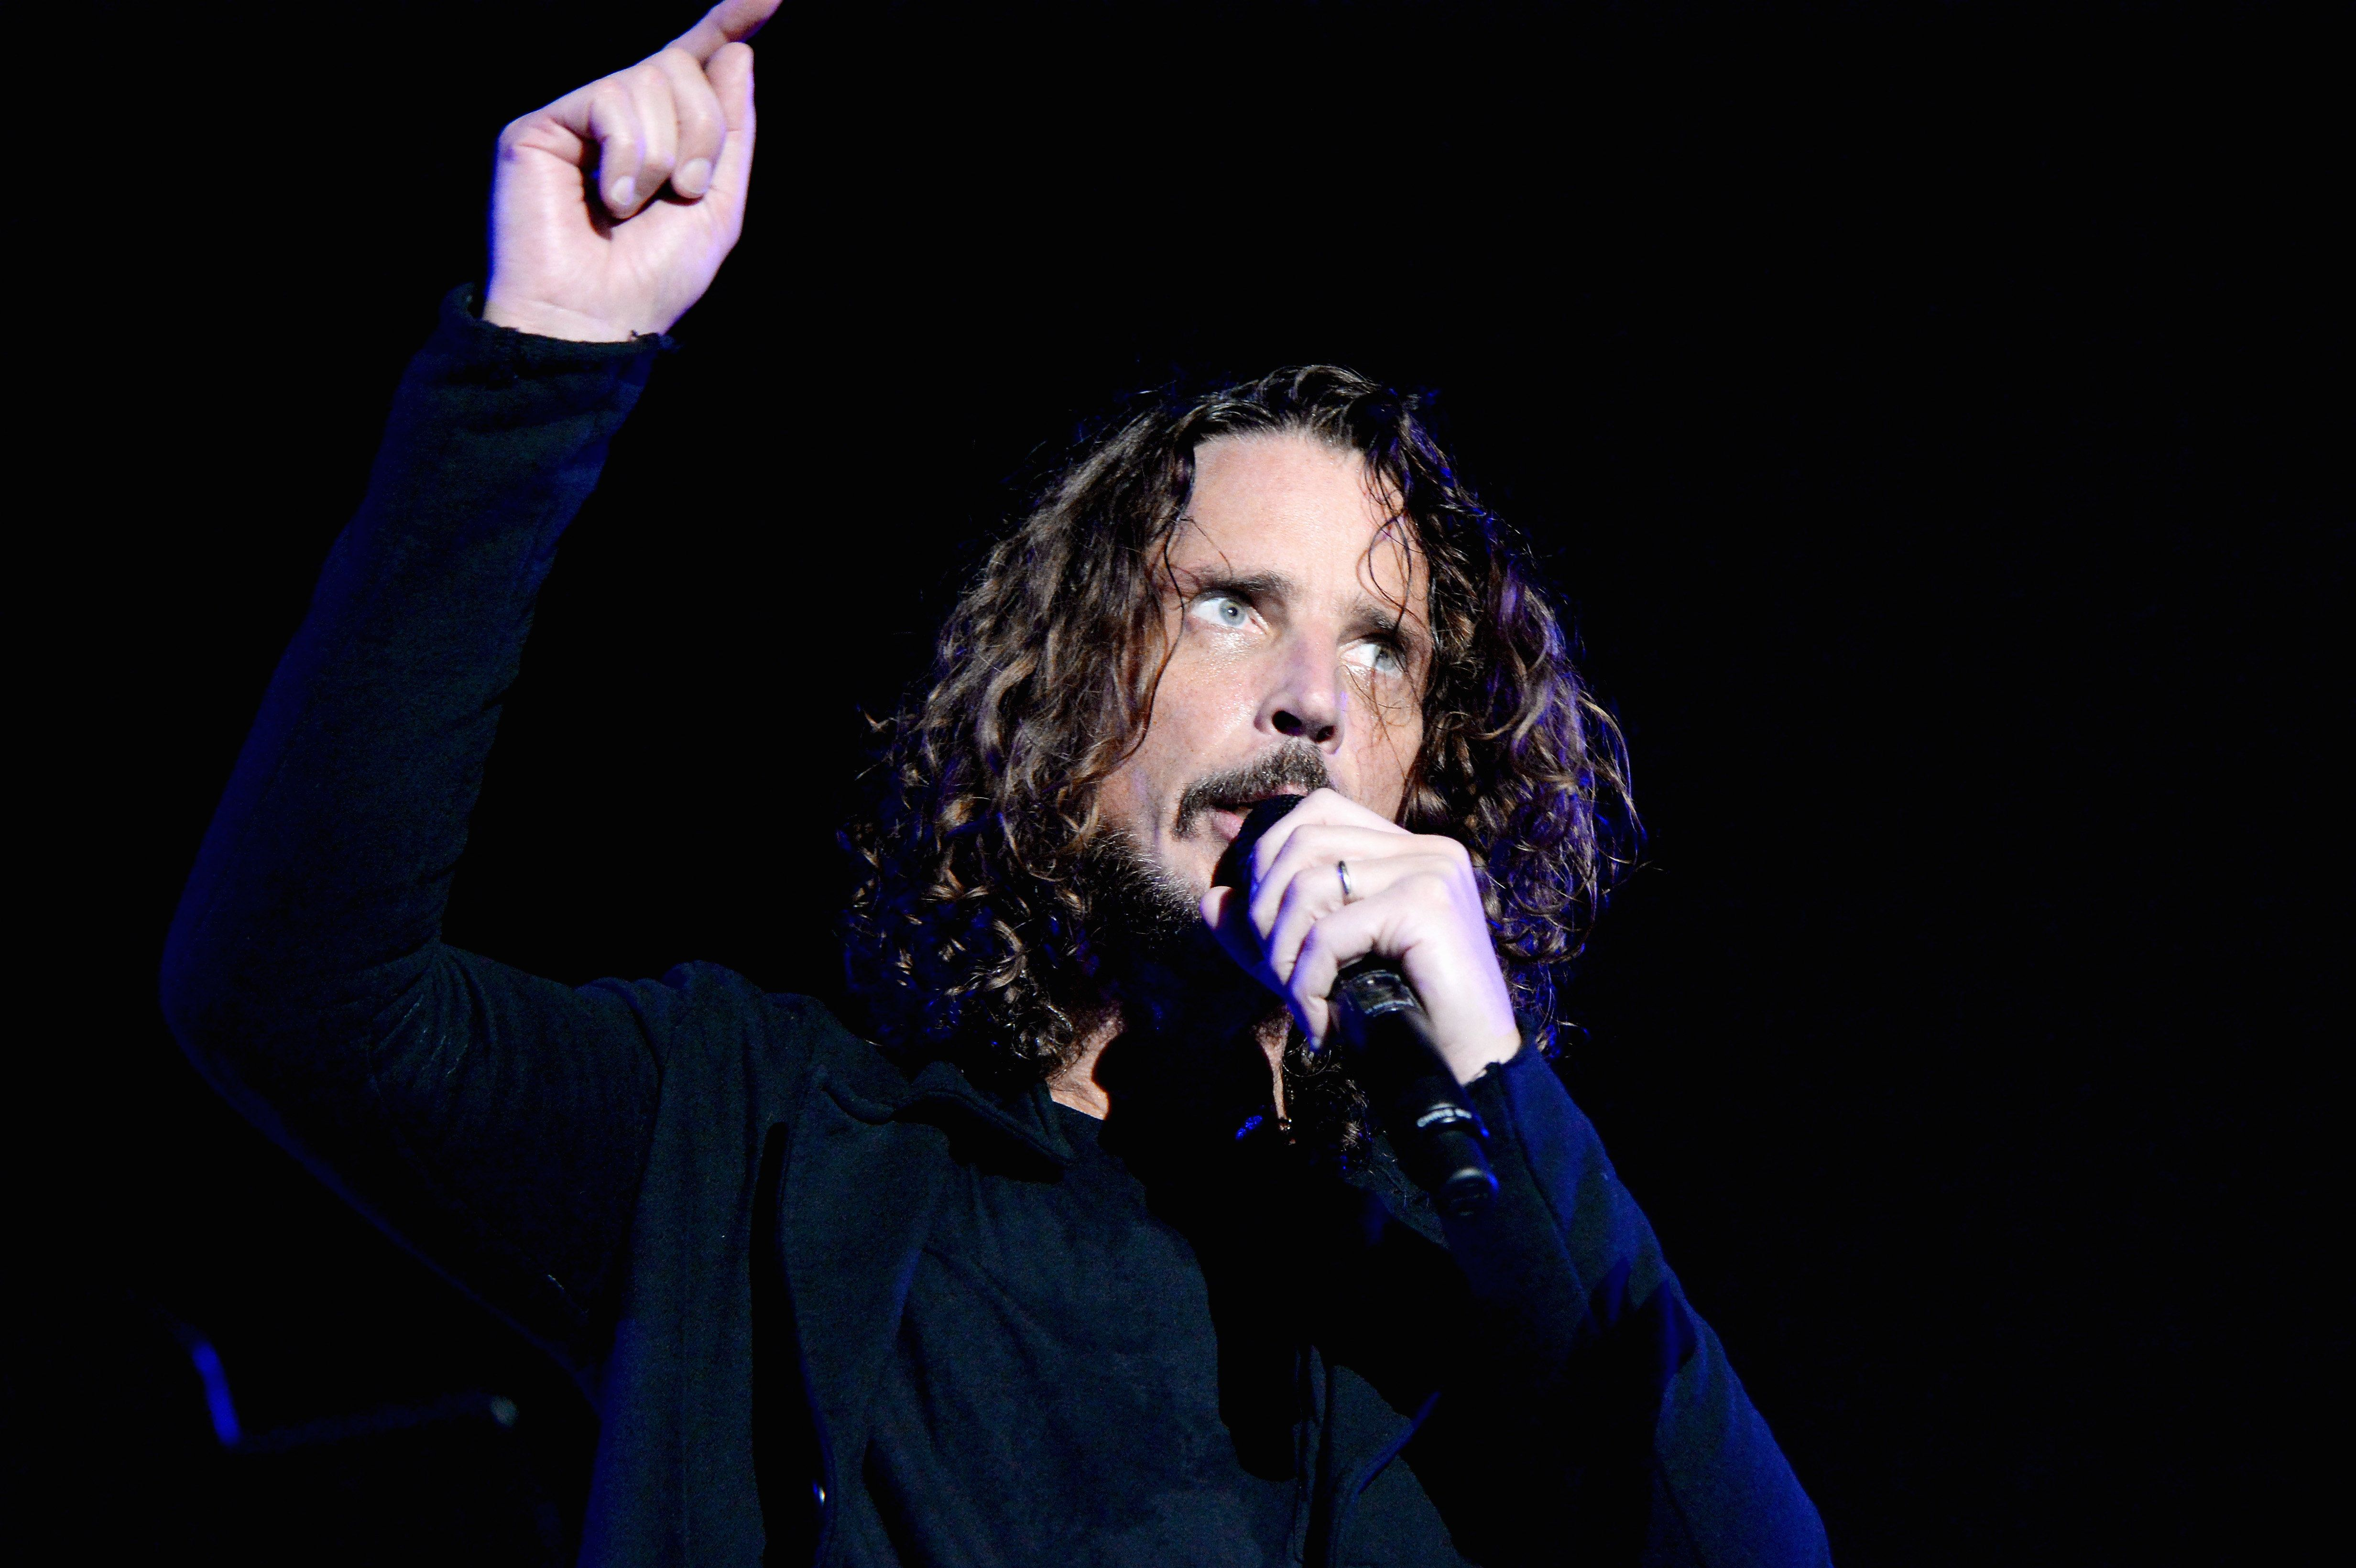 Police Say Chris Cornell's Death Is Being Investigated As Possible